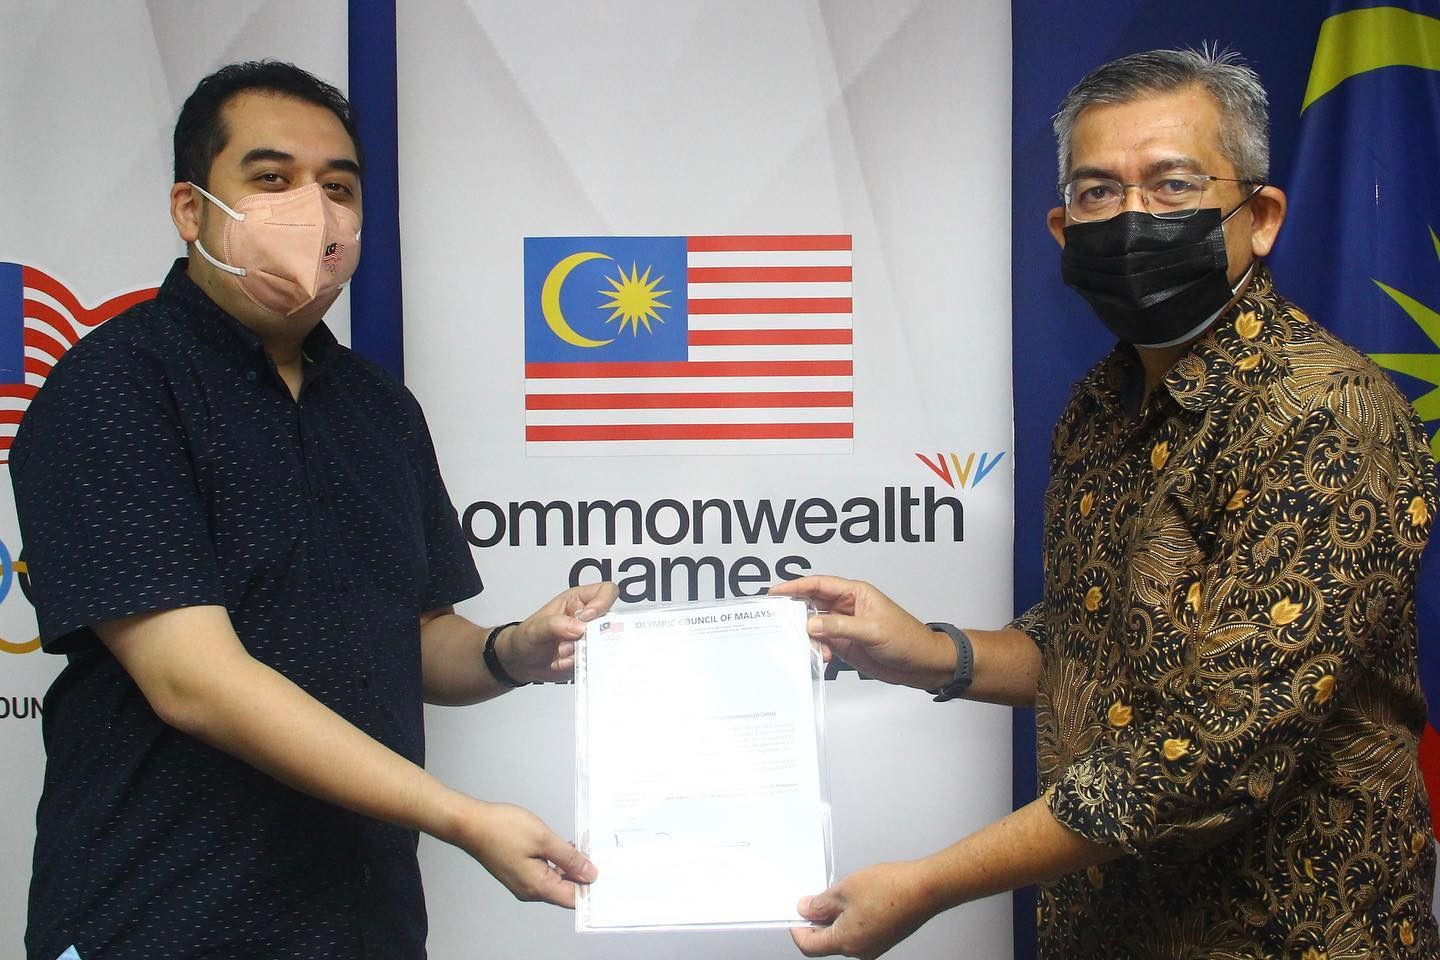 Exclusive: Olympic Council of Malaysia open to bidding for Commonwealth Games in future